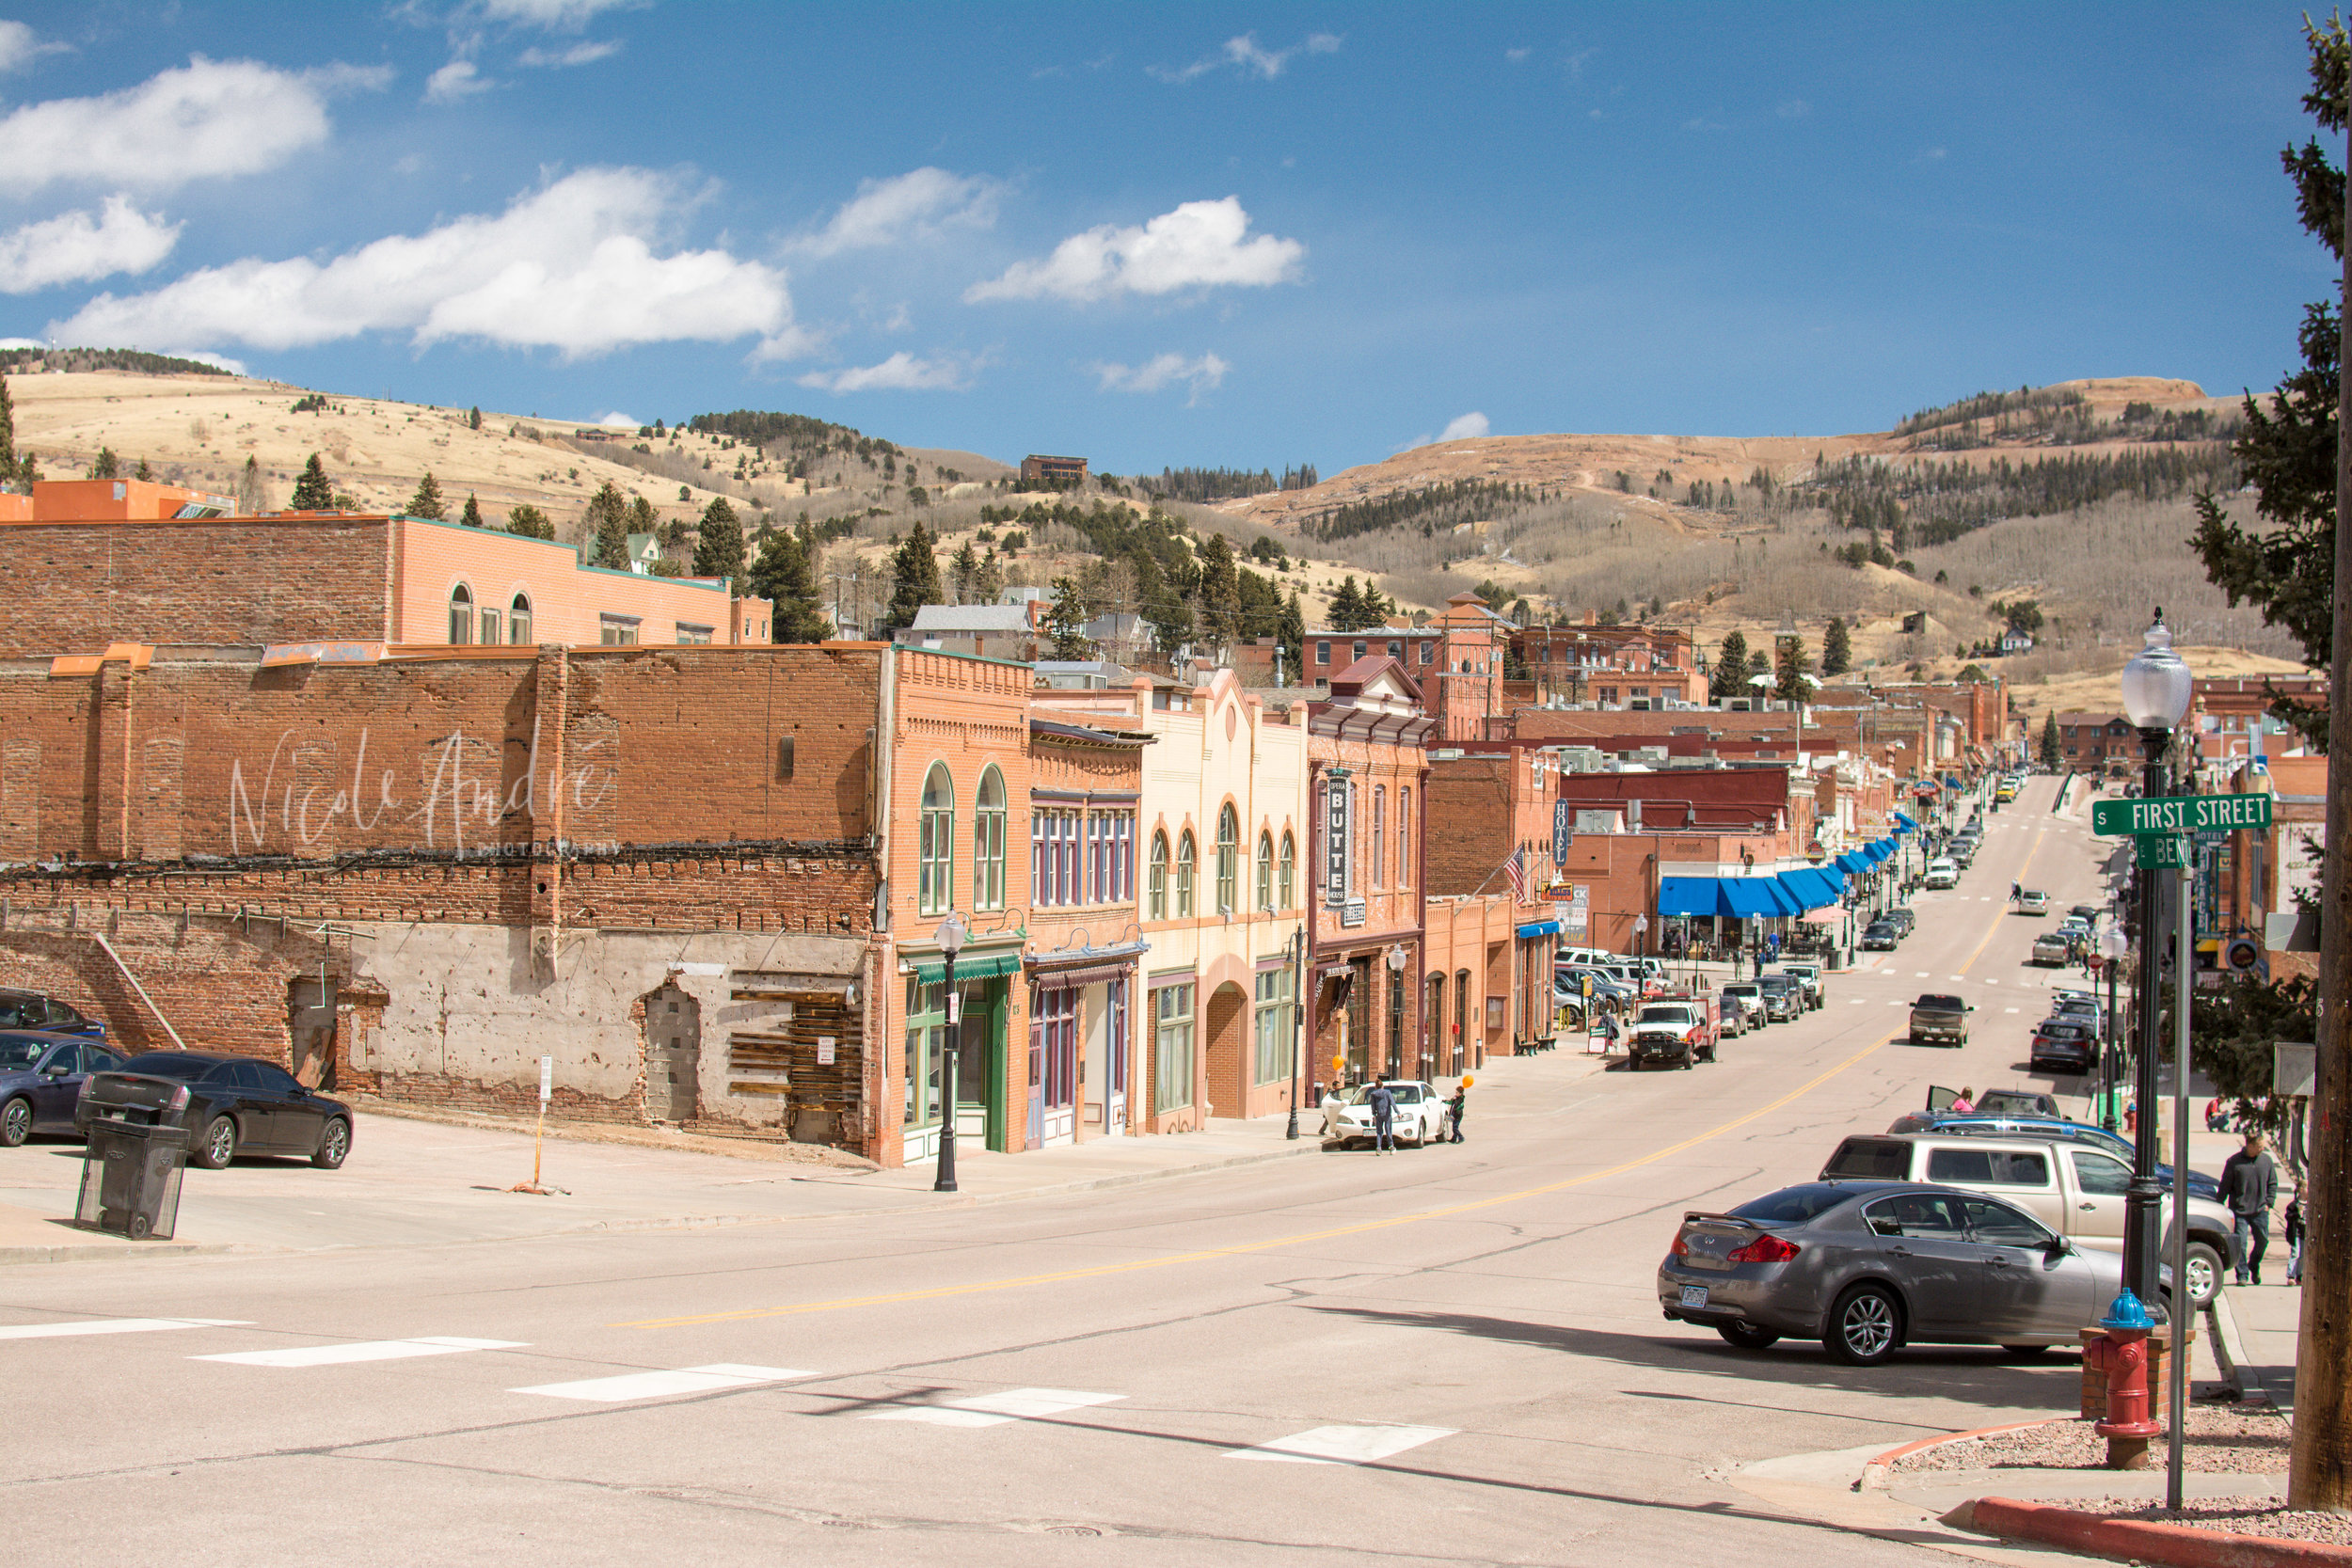 The main street in Cripple Creek.  It is lined mainly with a few empty buildings, some restaurants and a ton of casinos.  BUT, that view is so pretty and even though it is over 9000 feet up, the mountains still feel huge.